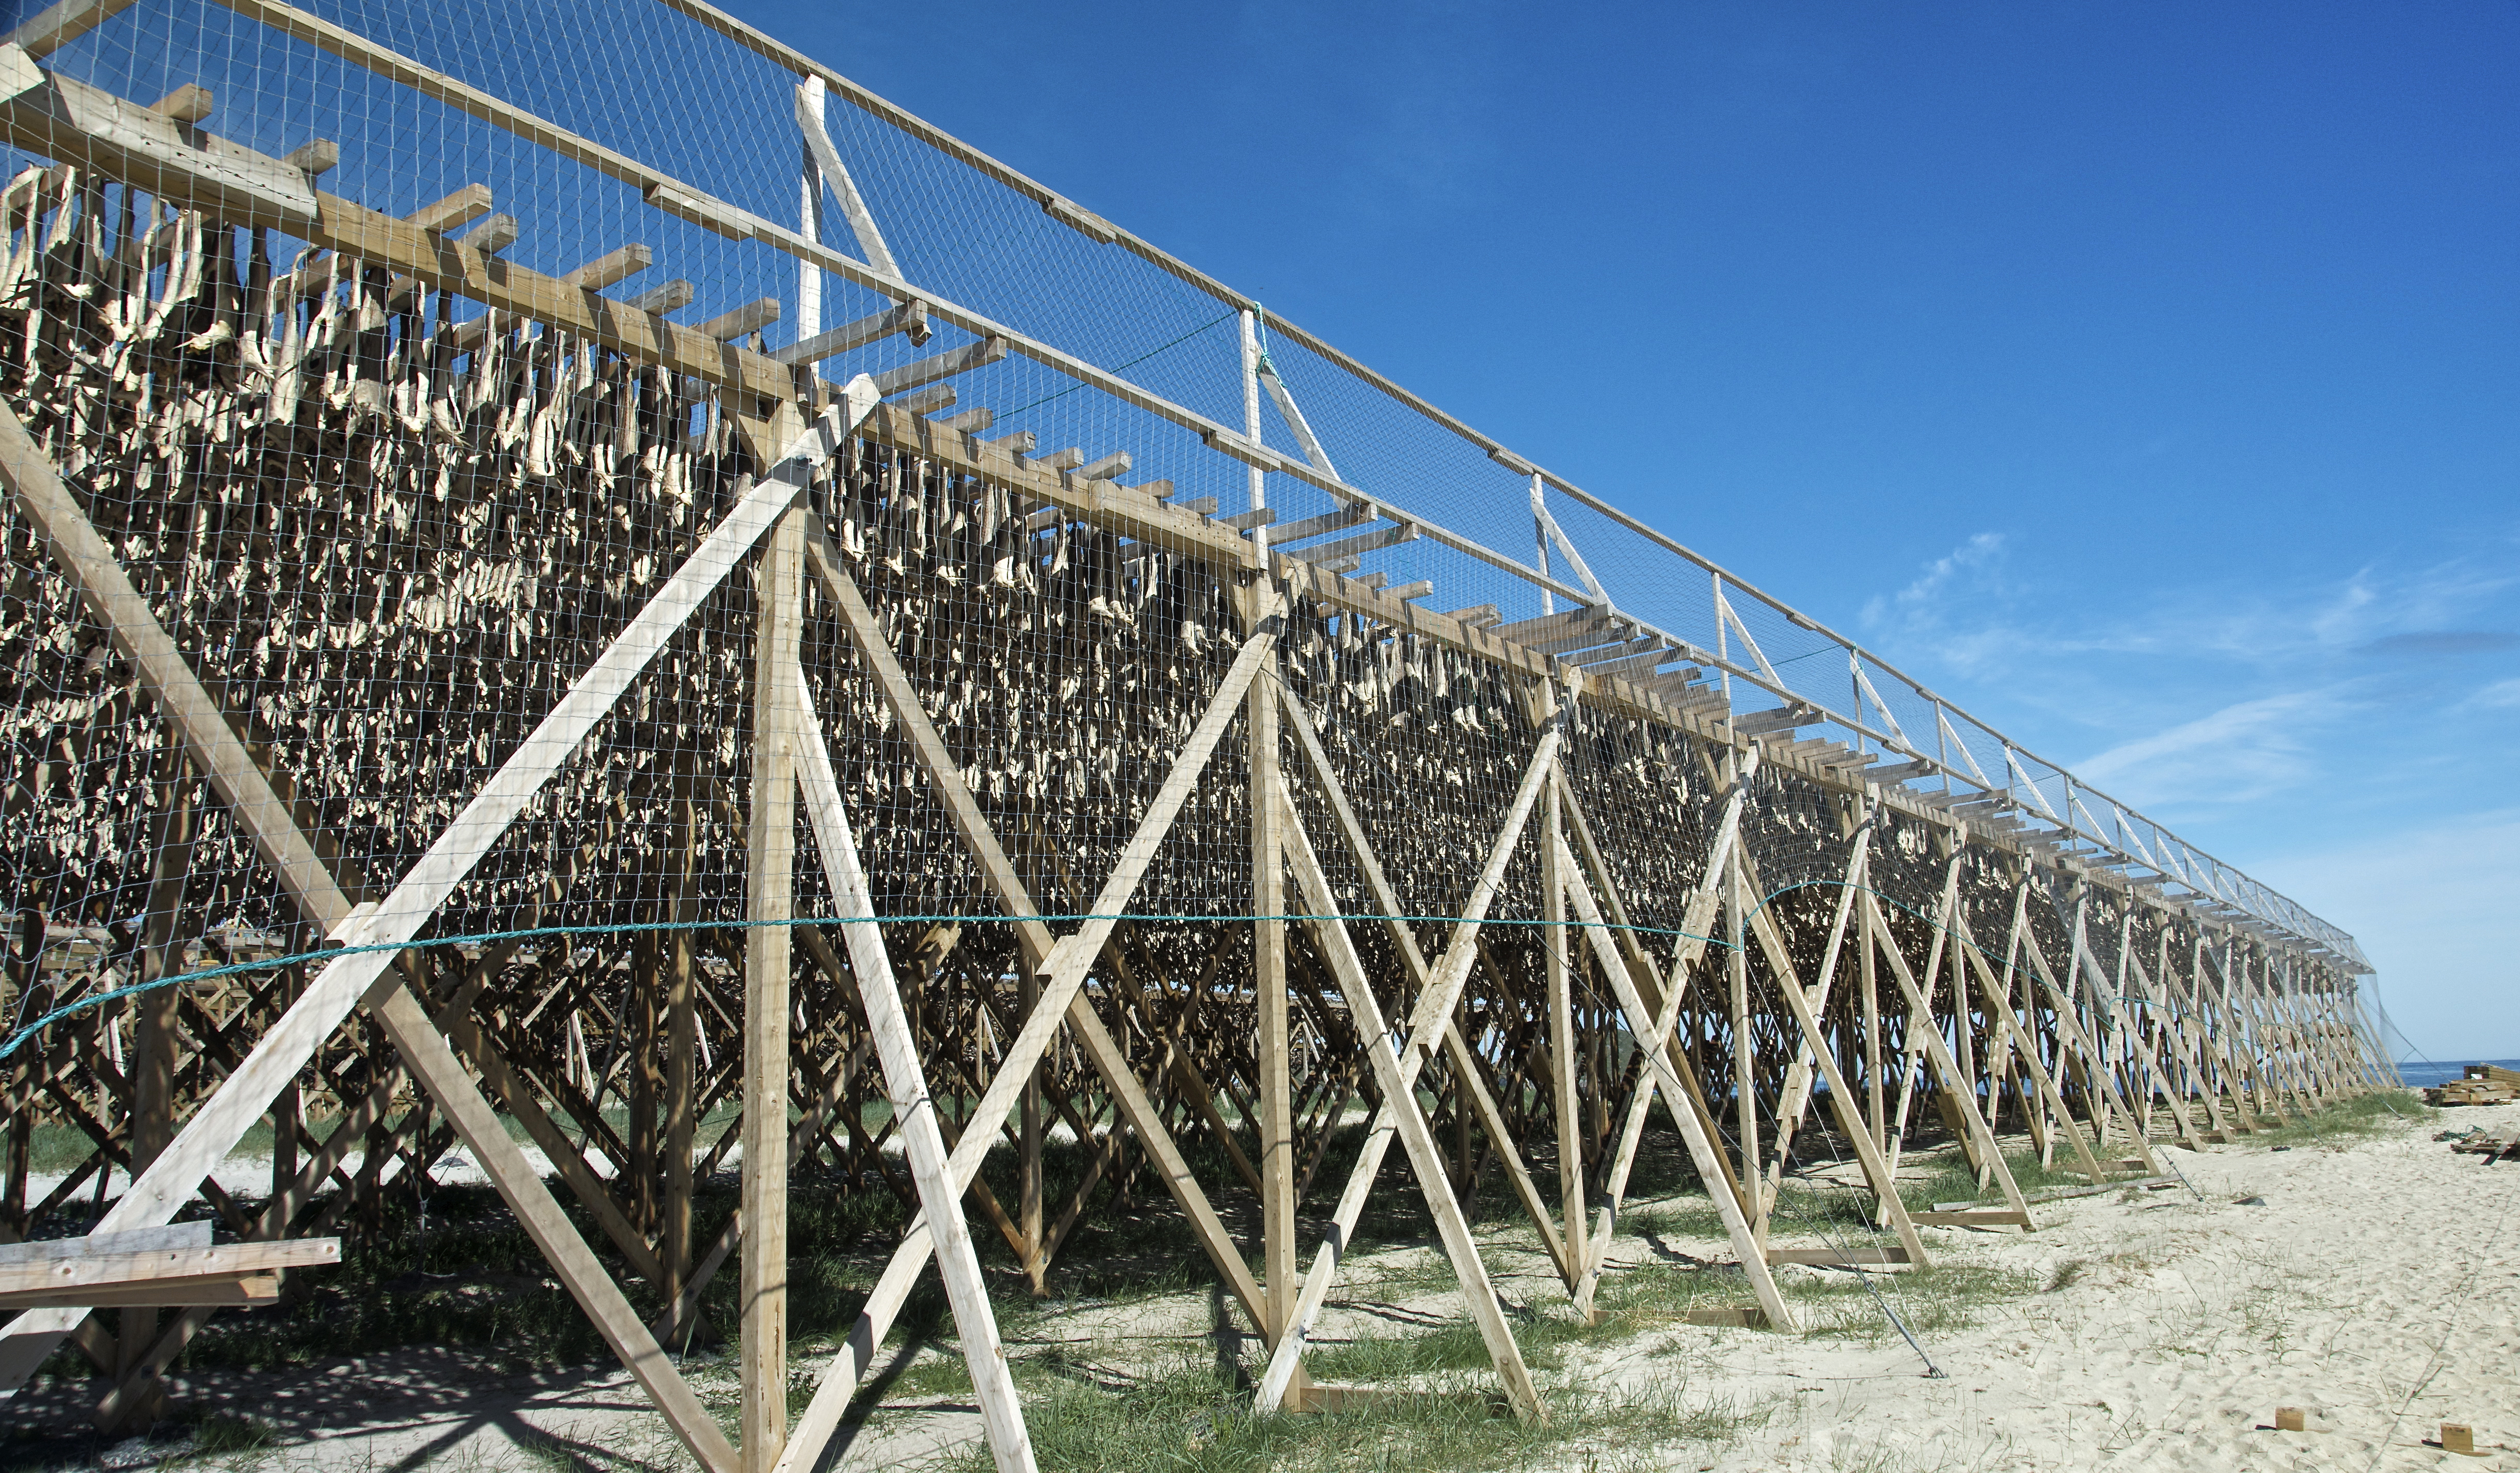 Fish drying - Hovden, Norway